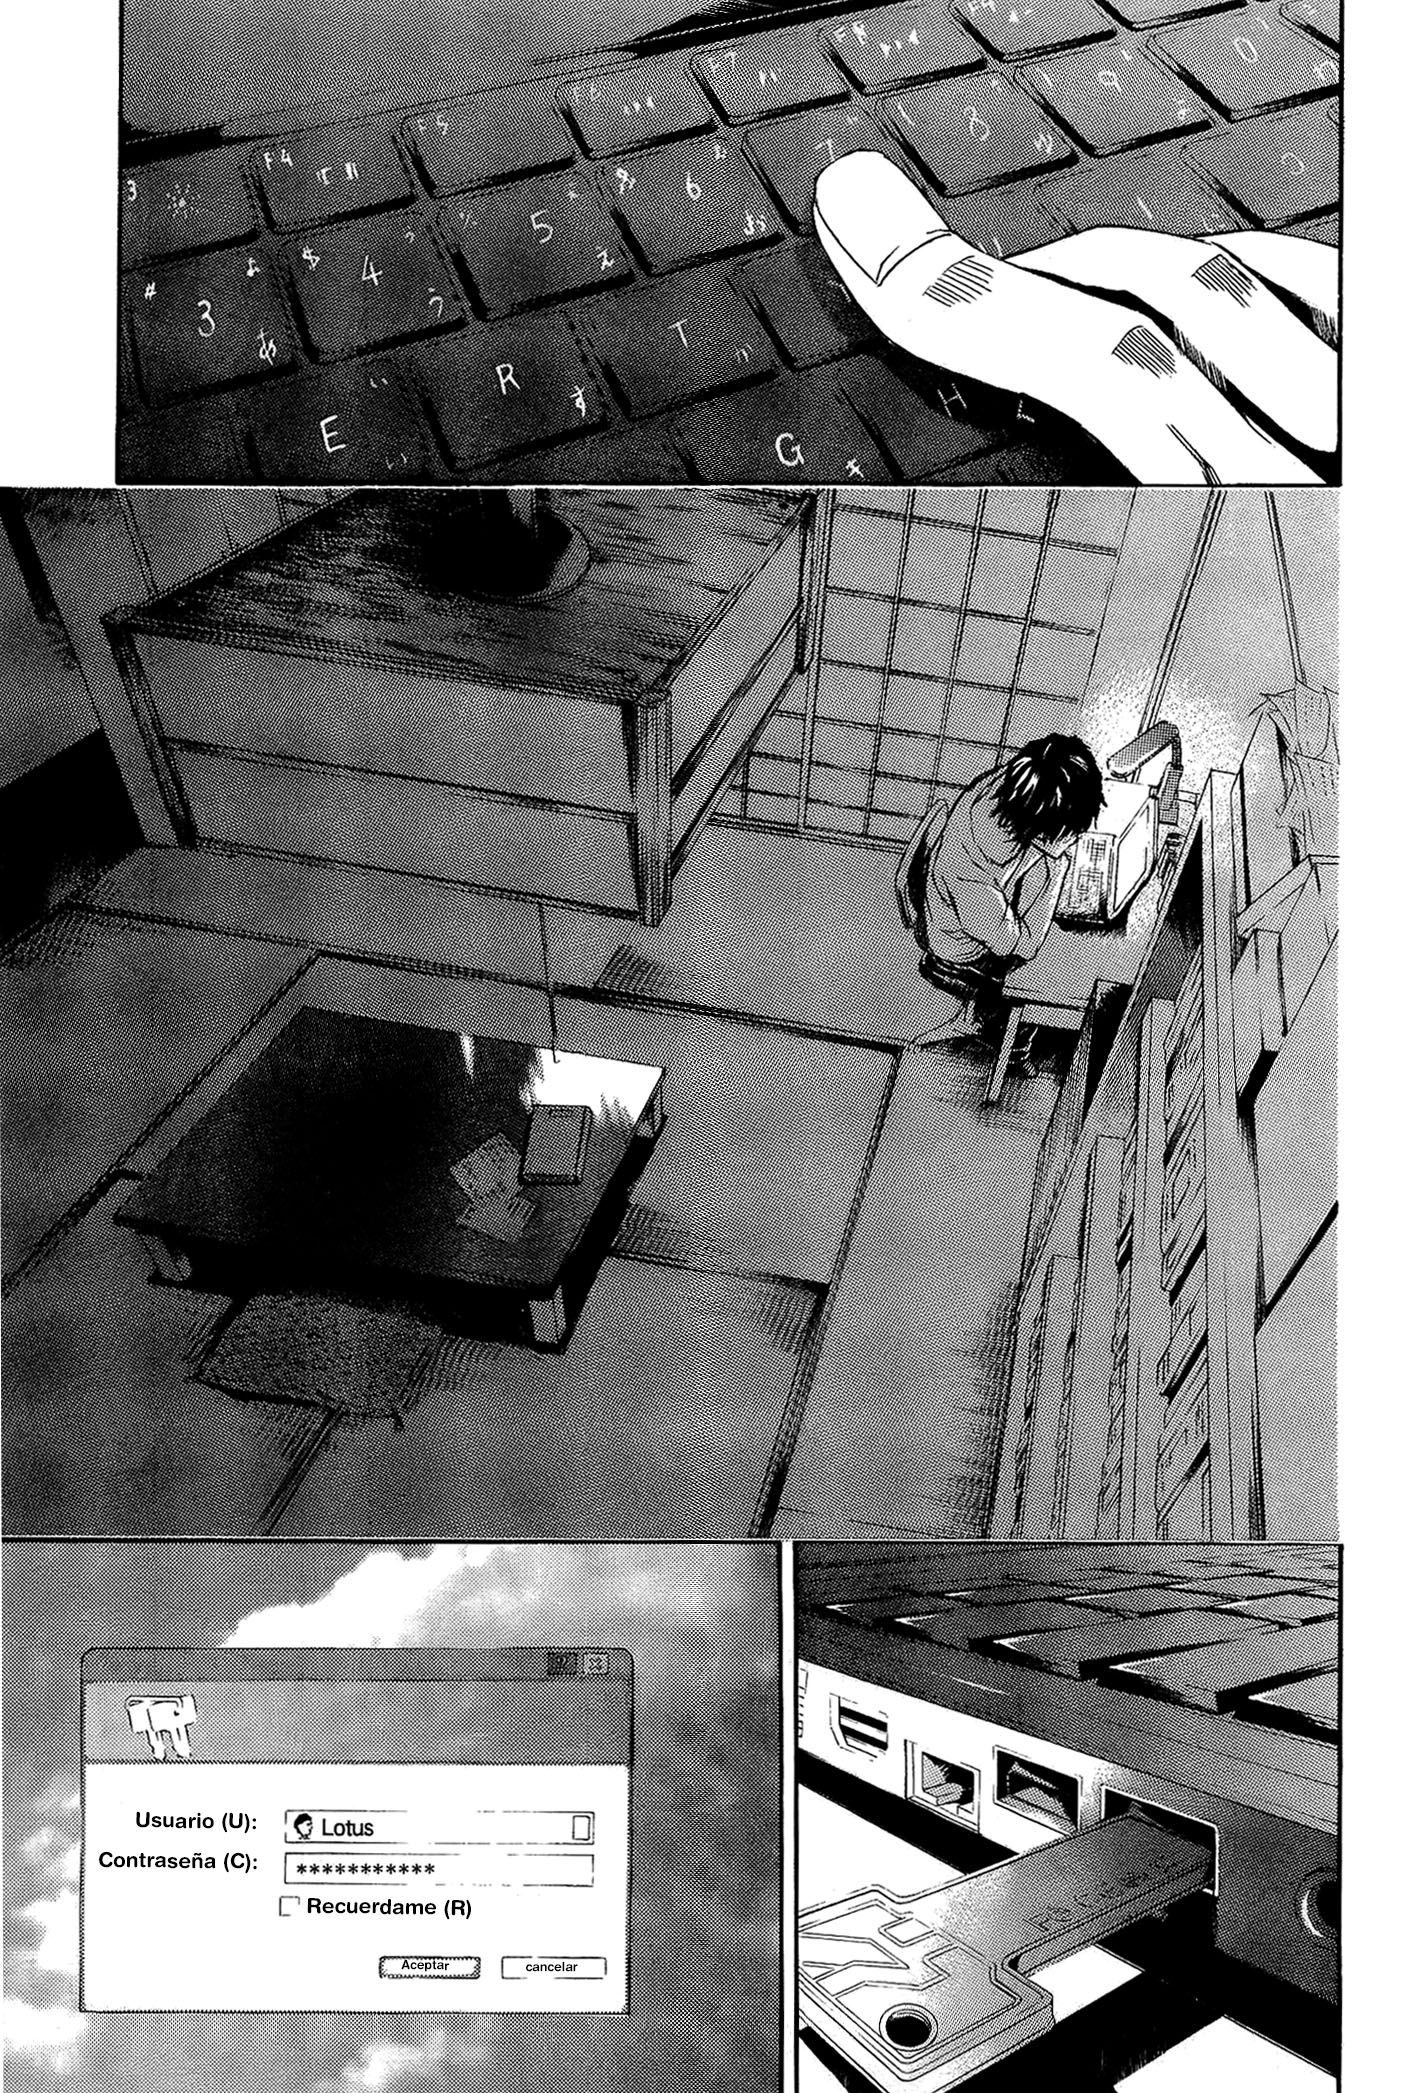 http://c5.ninemanga.com/es_manga/3/19523/468638/92f4182ad6795b13f8c01d90c09b2a52.jpg Page 8